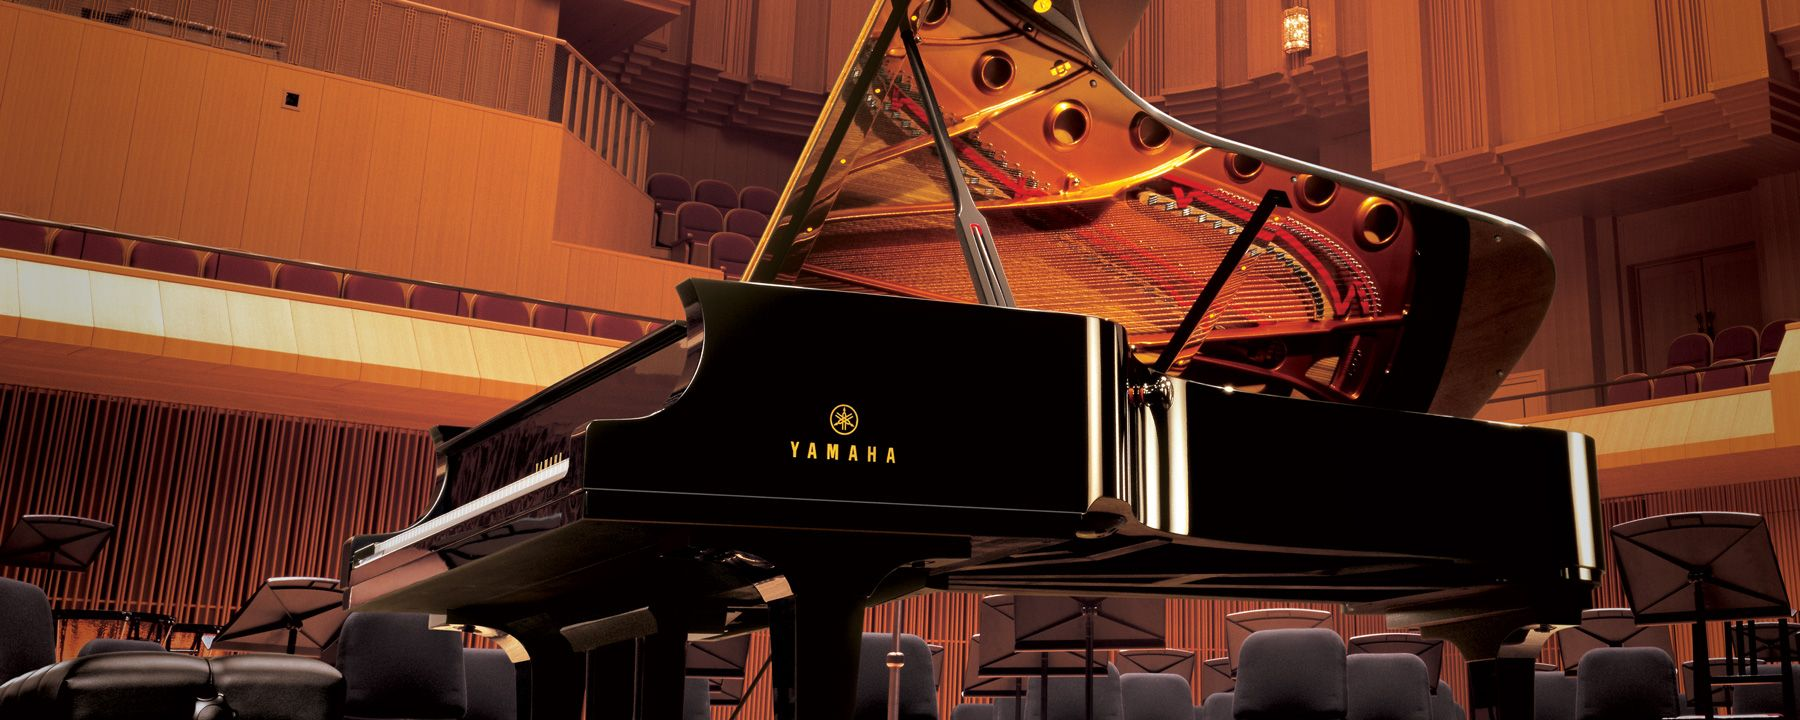 Freehold Music Center-Yamaha Piano Store in New Jersey